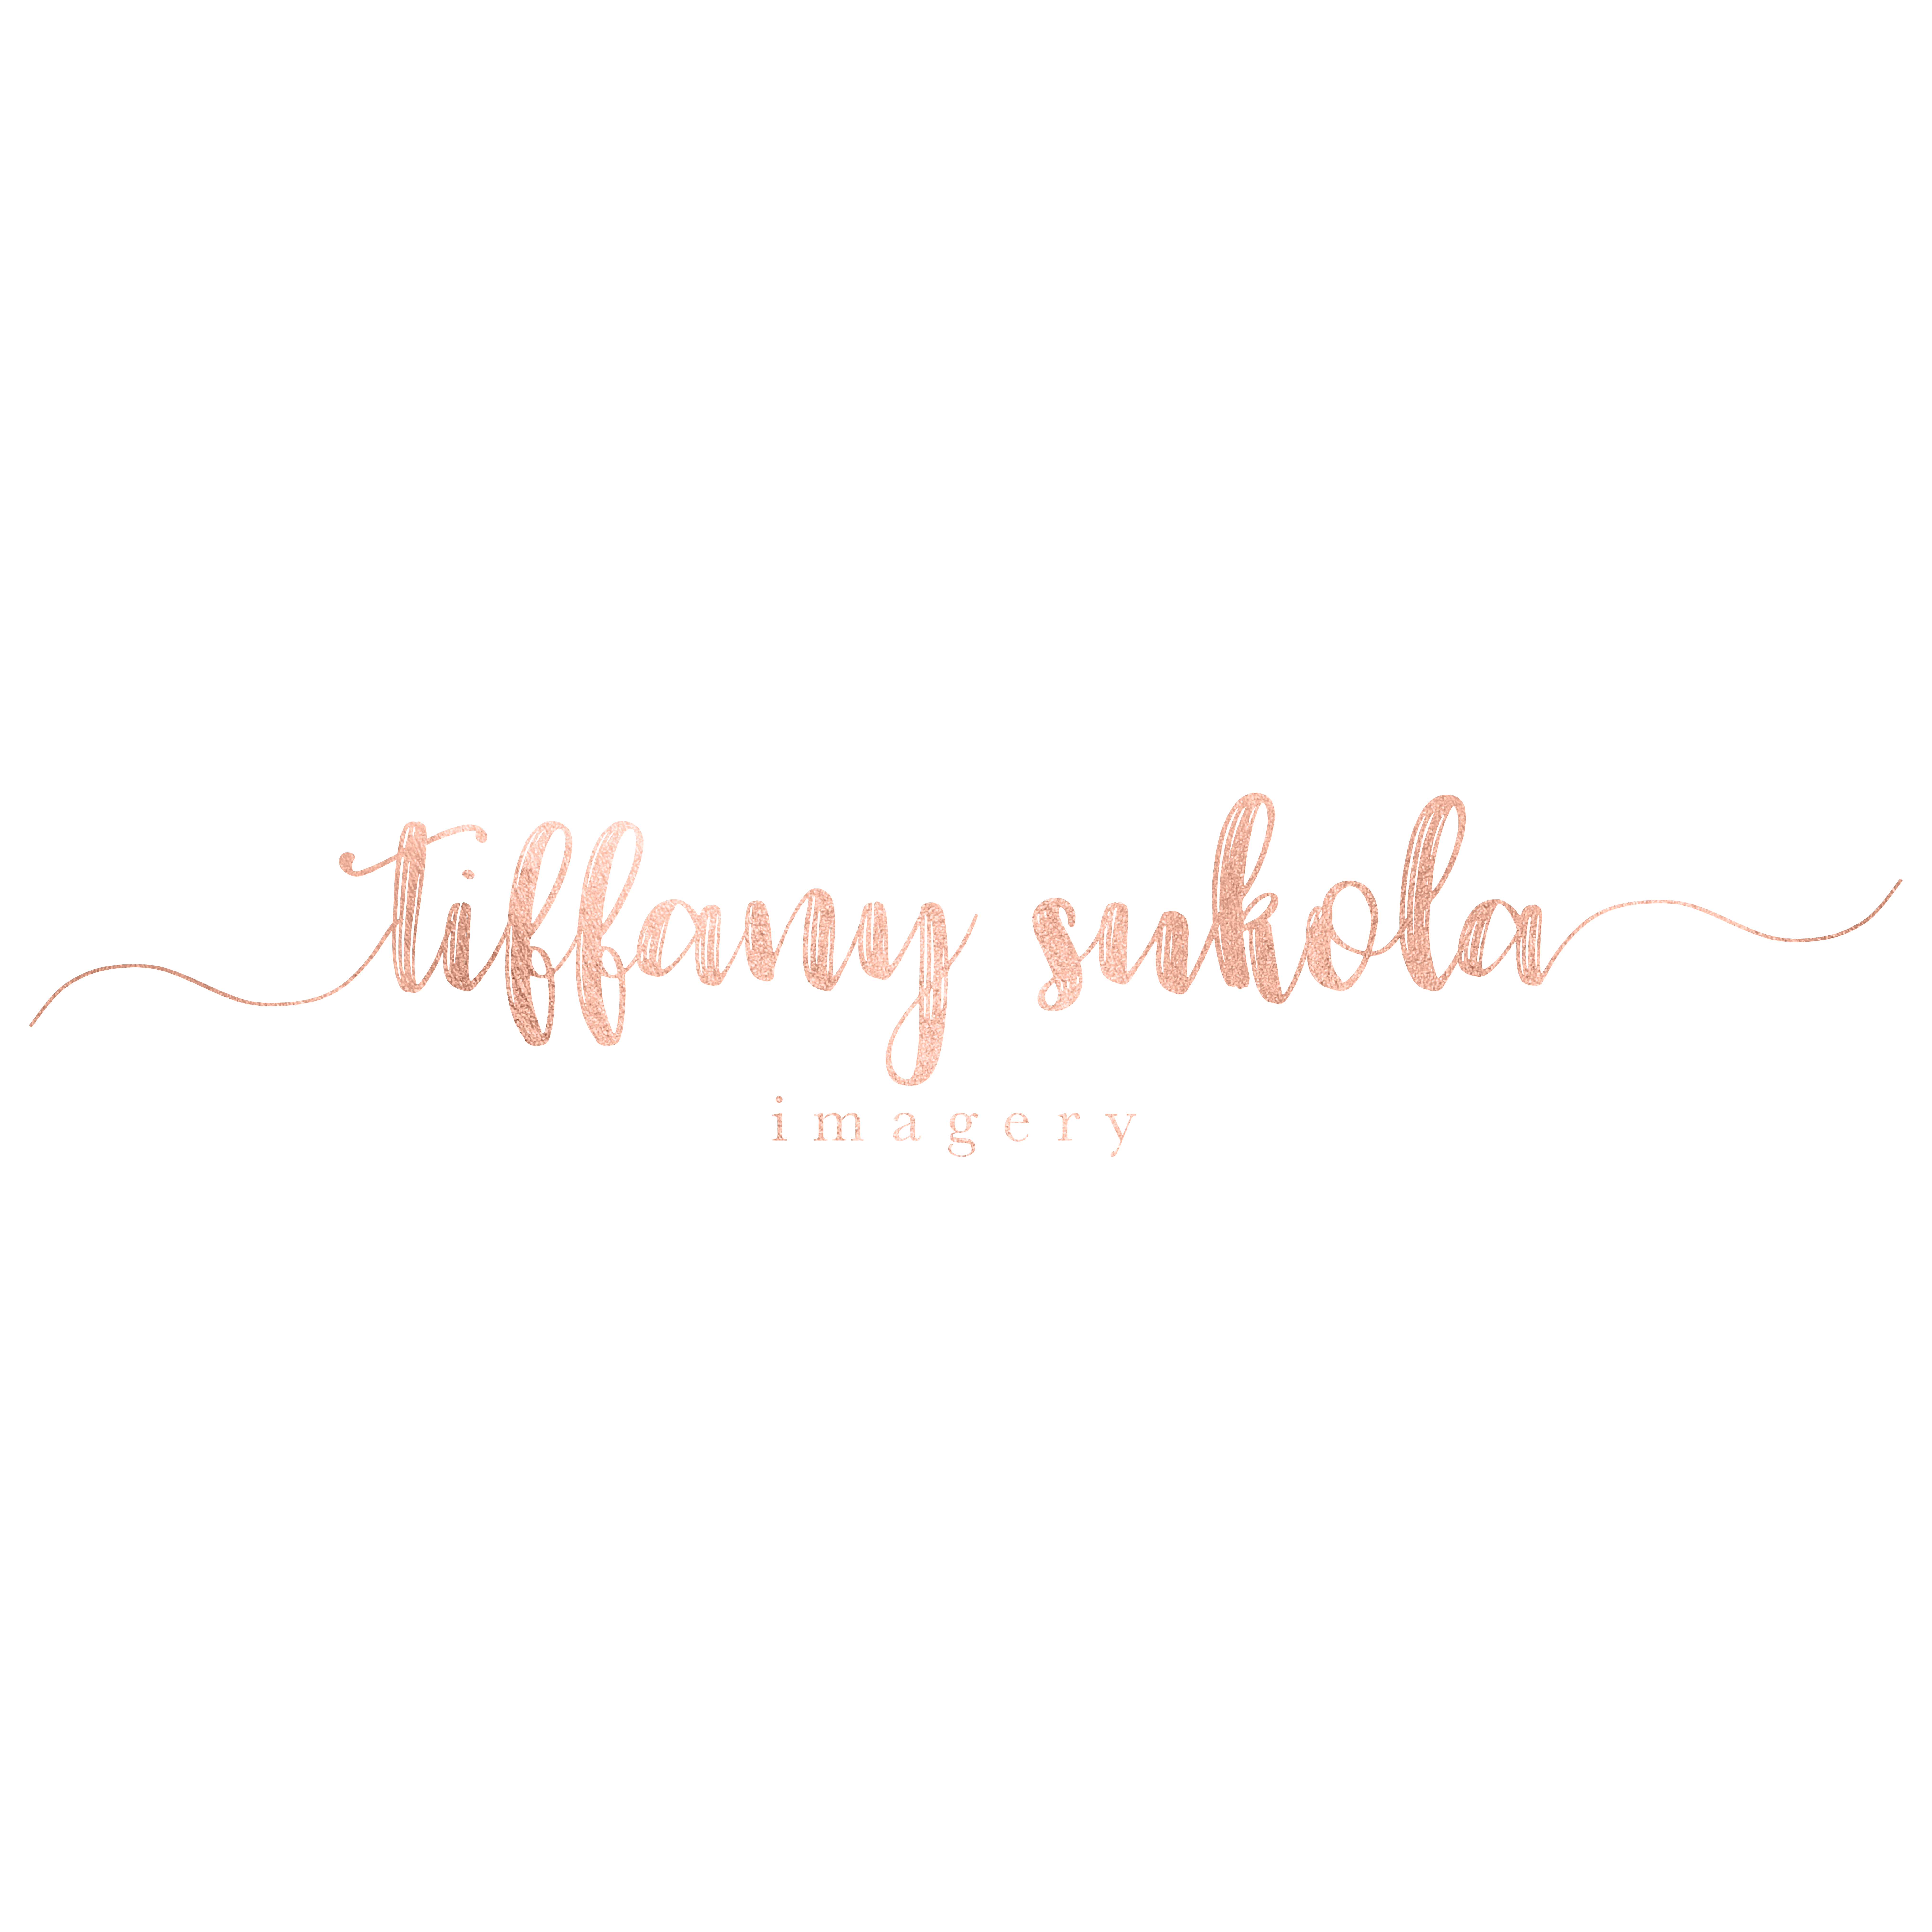 Tiffany Sukola Imagery: Washington State Wedding Photographer